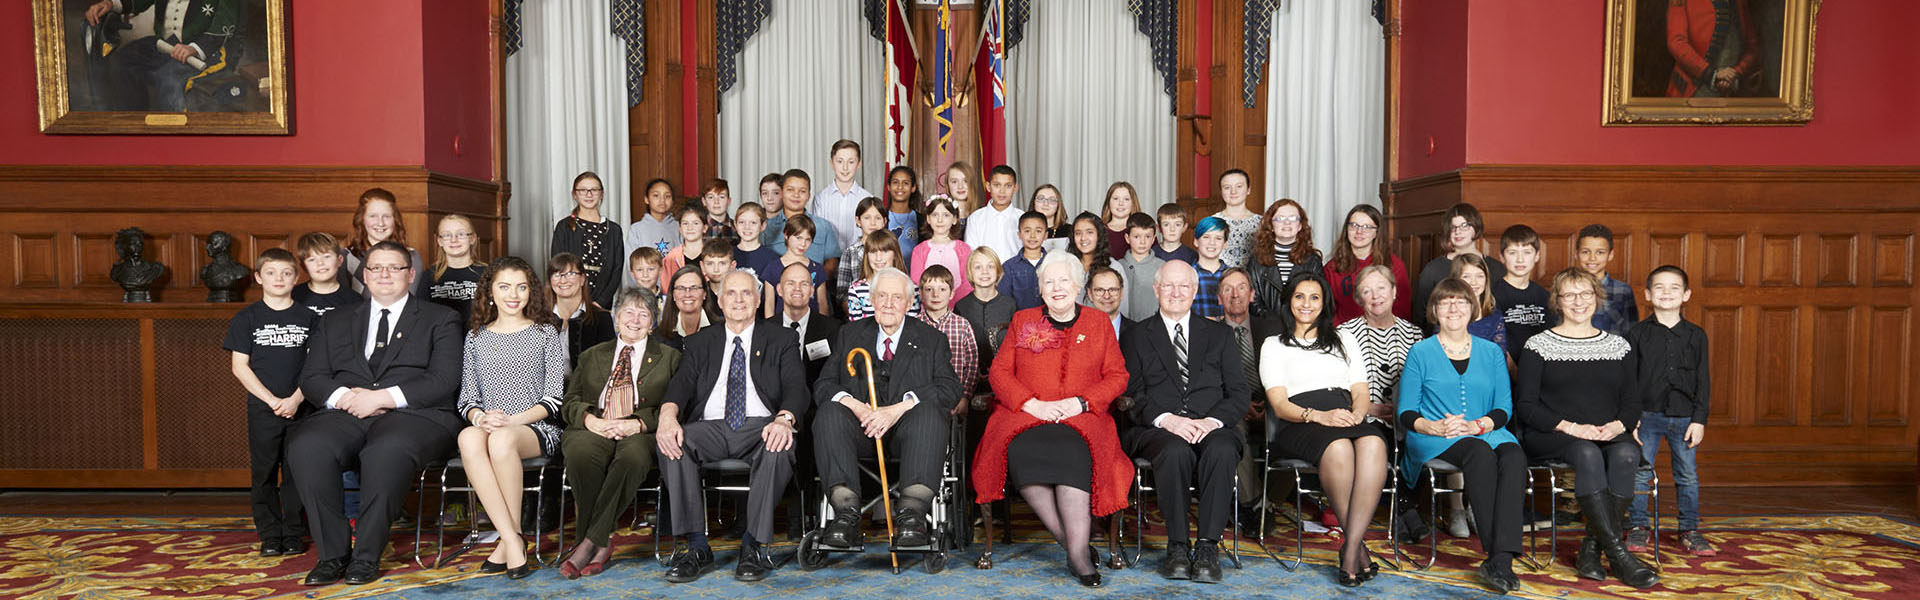 Recipients of the 2016 Lieutenant Governor's Ontario Heritage Awards